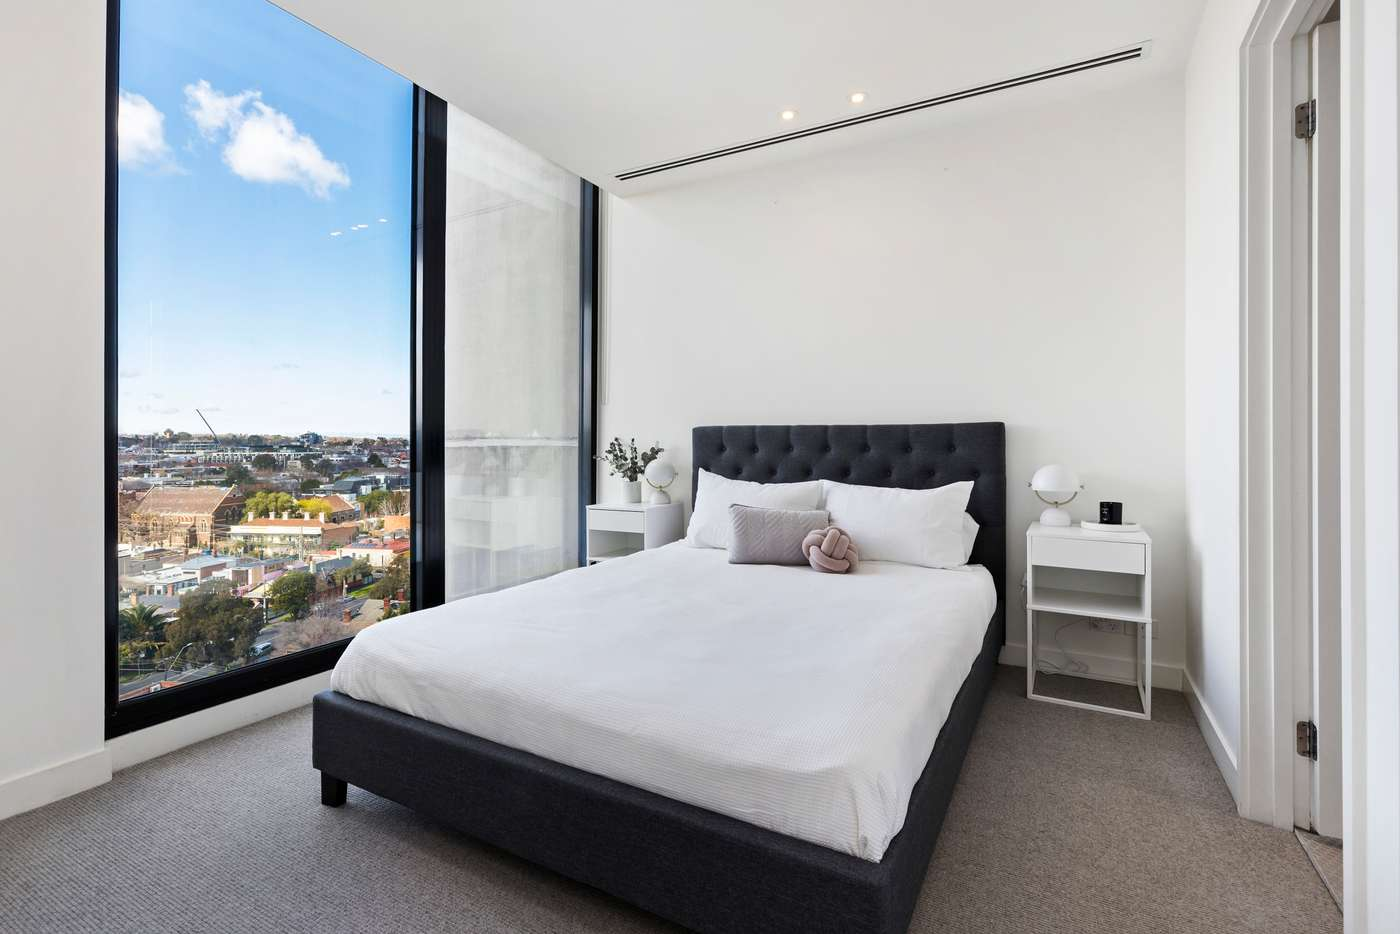 Sixth view of Homely apartment listing, 1011/1 Clara Street, South Yarra VIC 3141